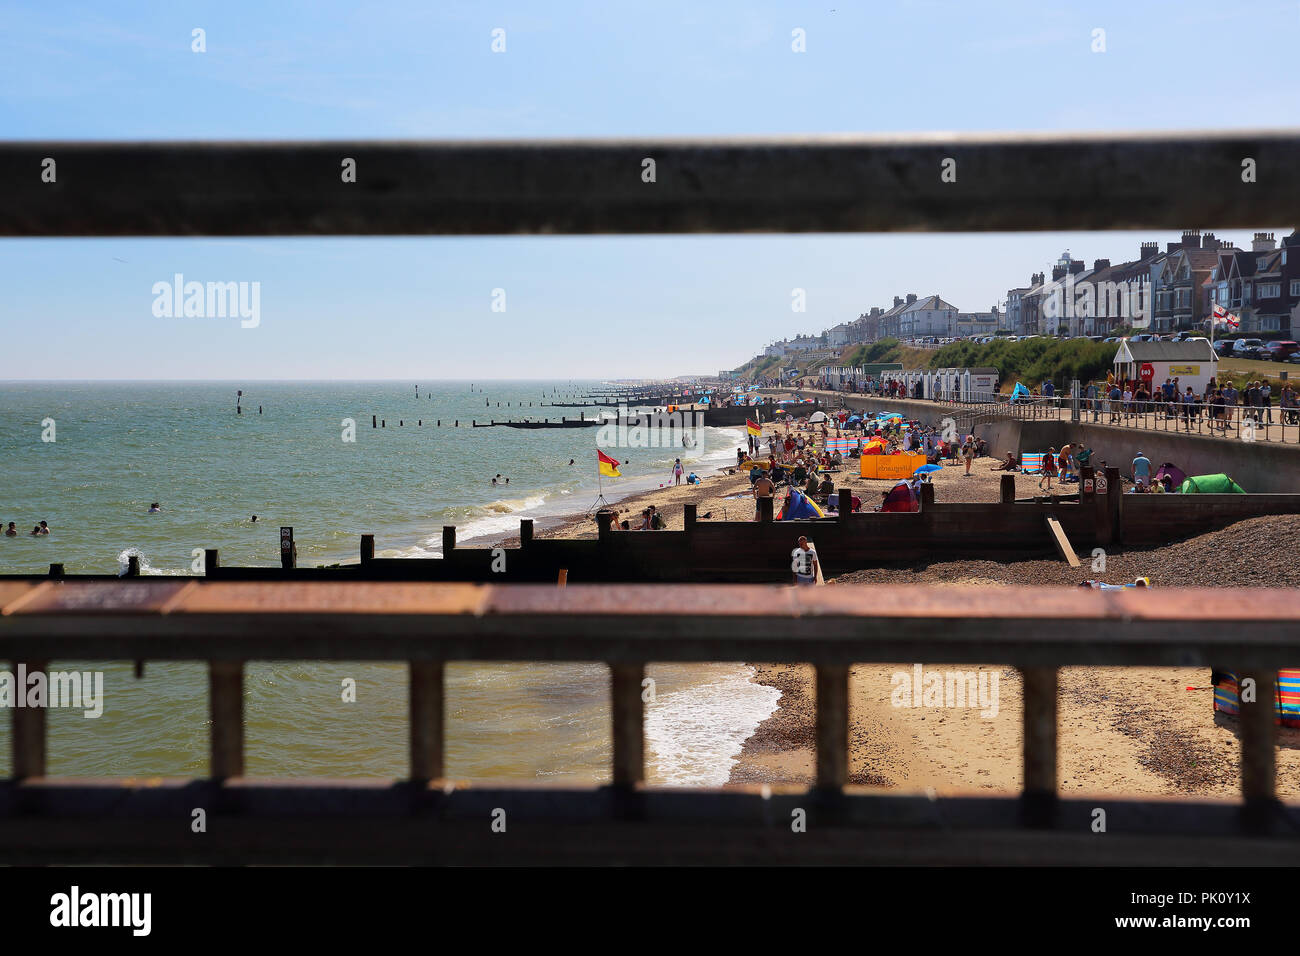 The beach at Southwold, Suffolk, UK, looking through railings on the promenade. - Stock Image